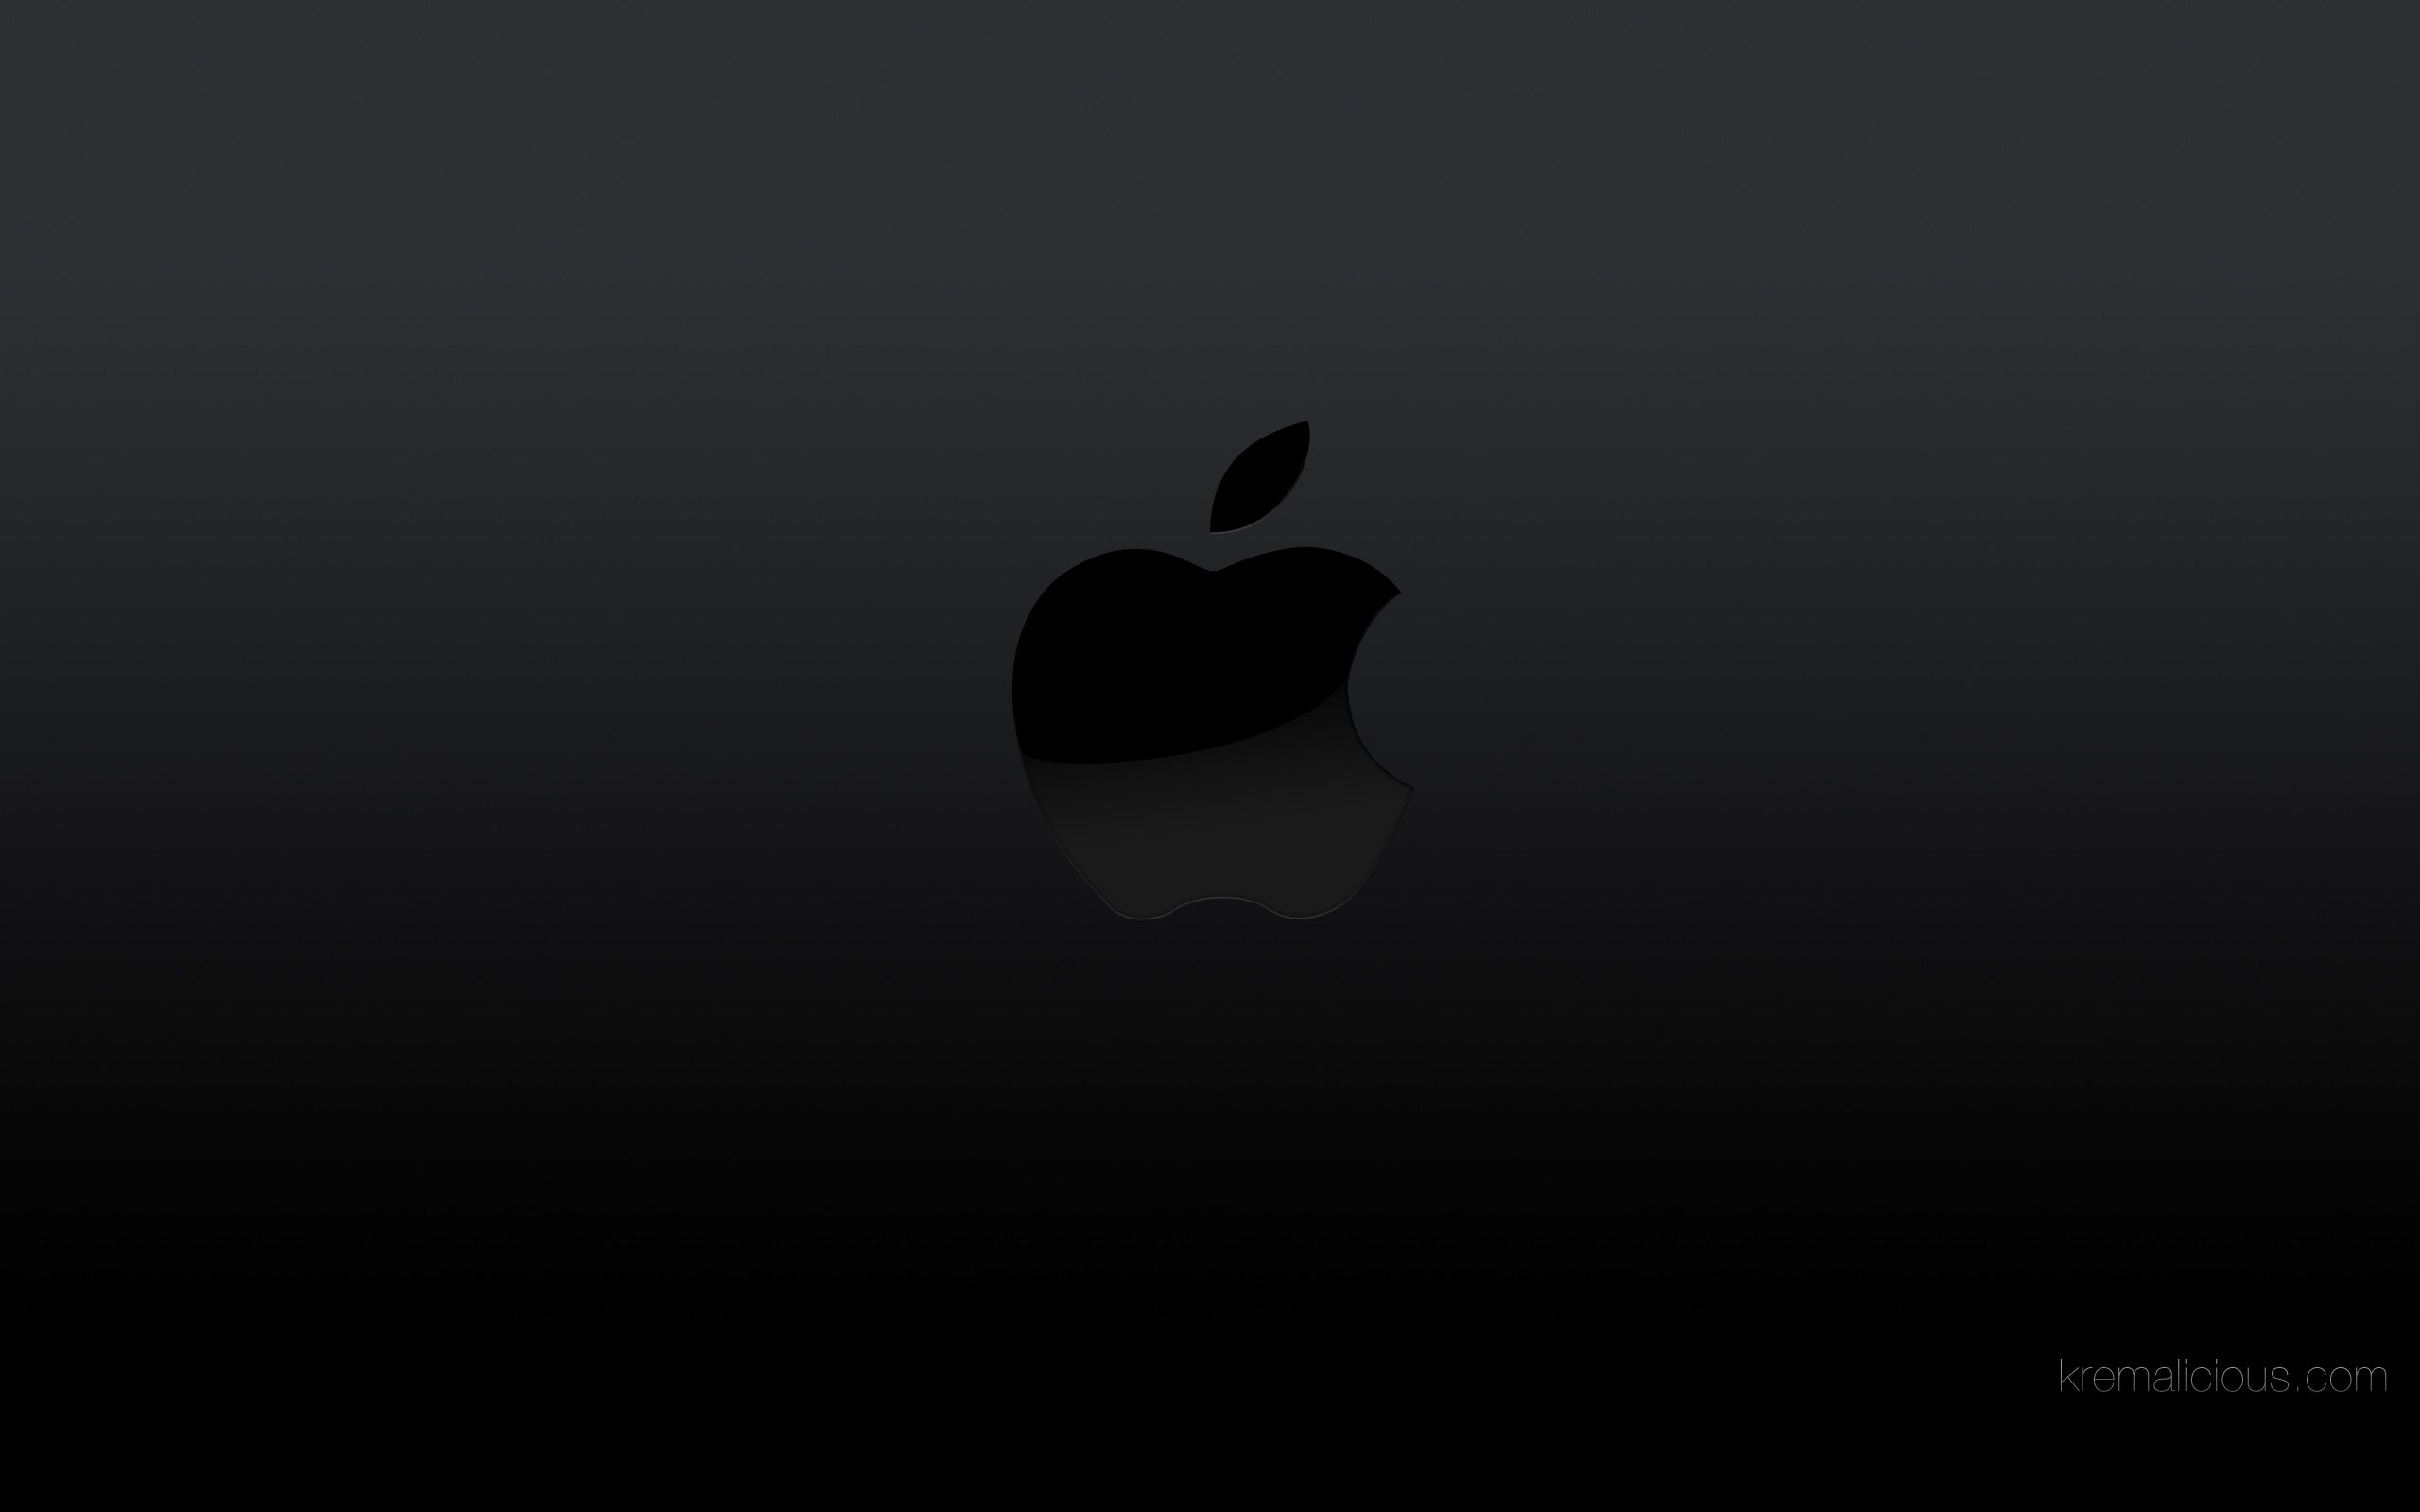 Black Apple Logo Wallpapers Top Free Black Apple Logo Backgrounds Wallpaperaccess